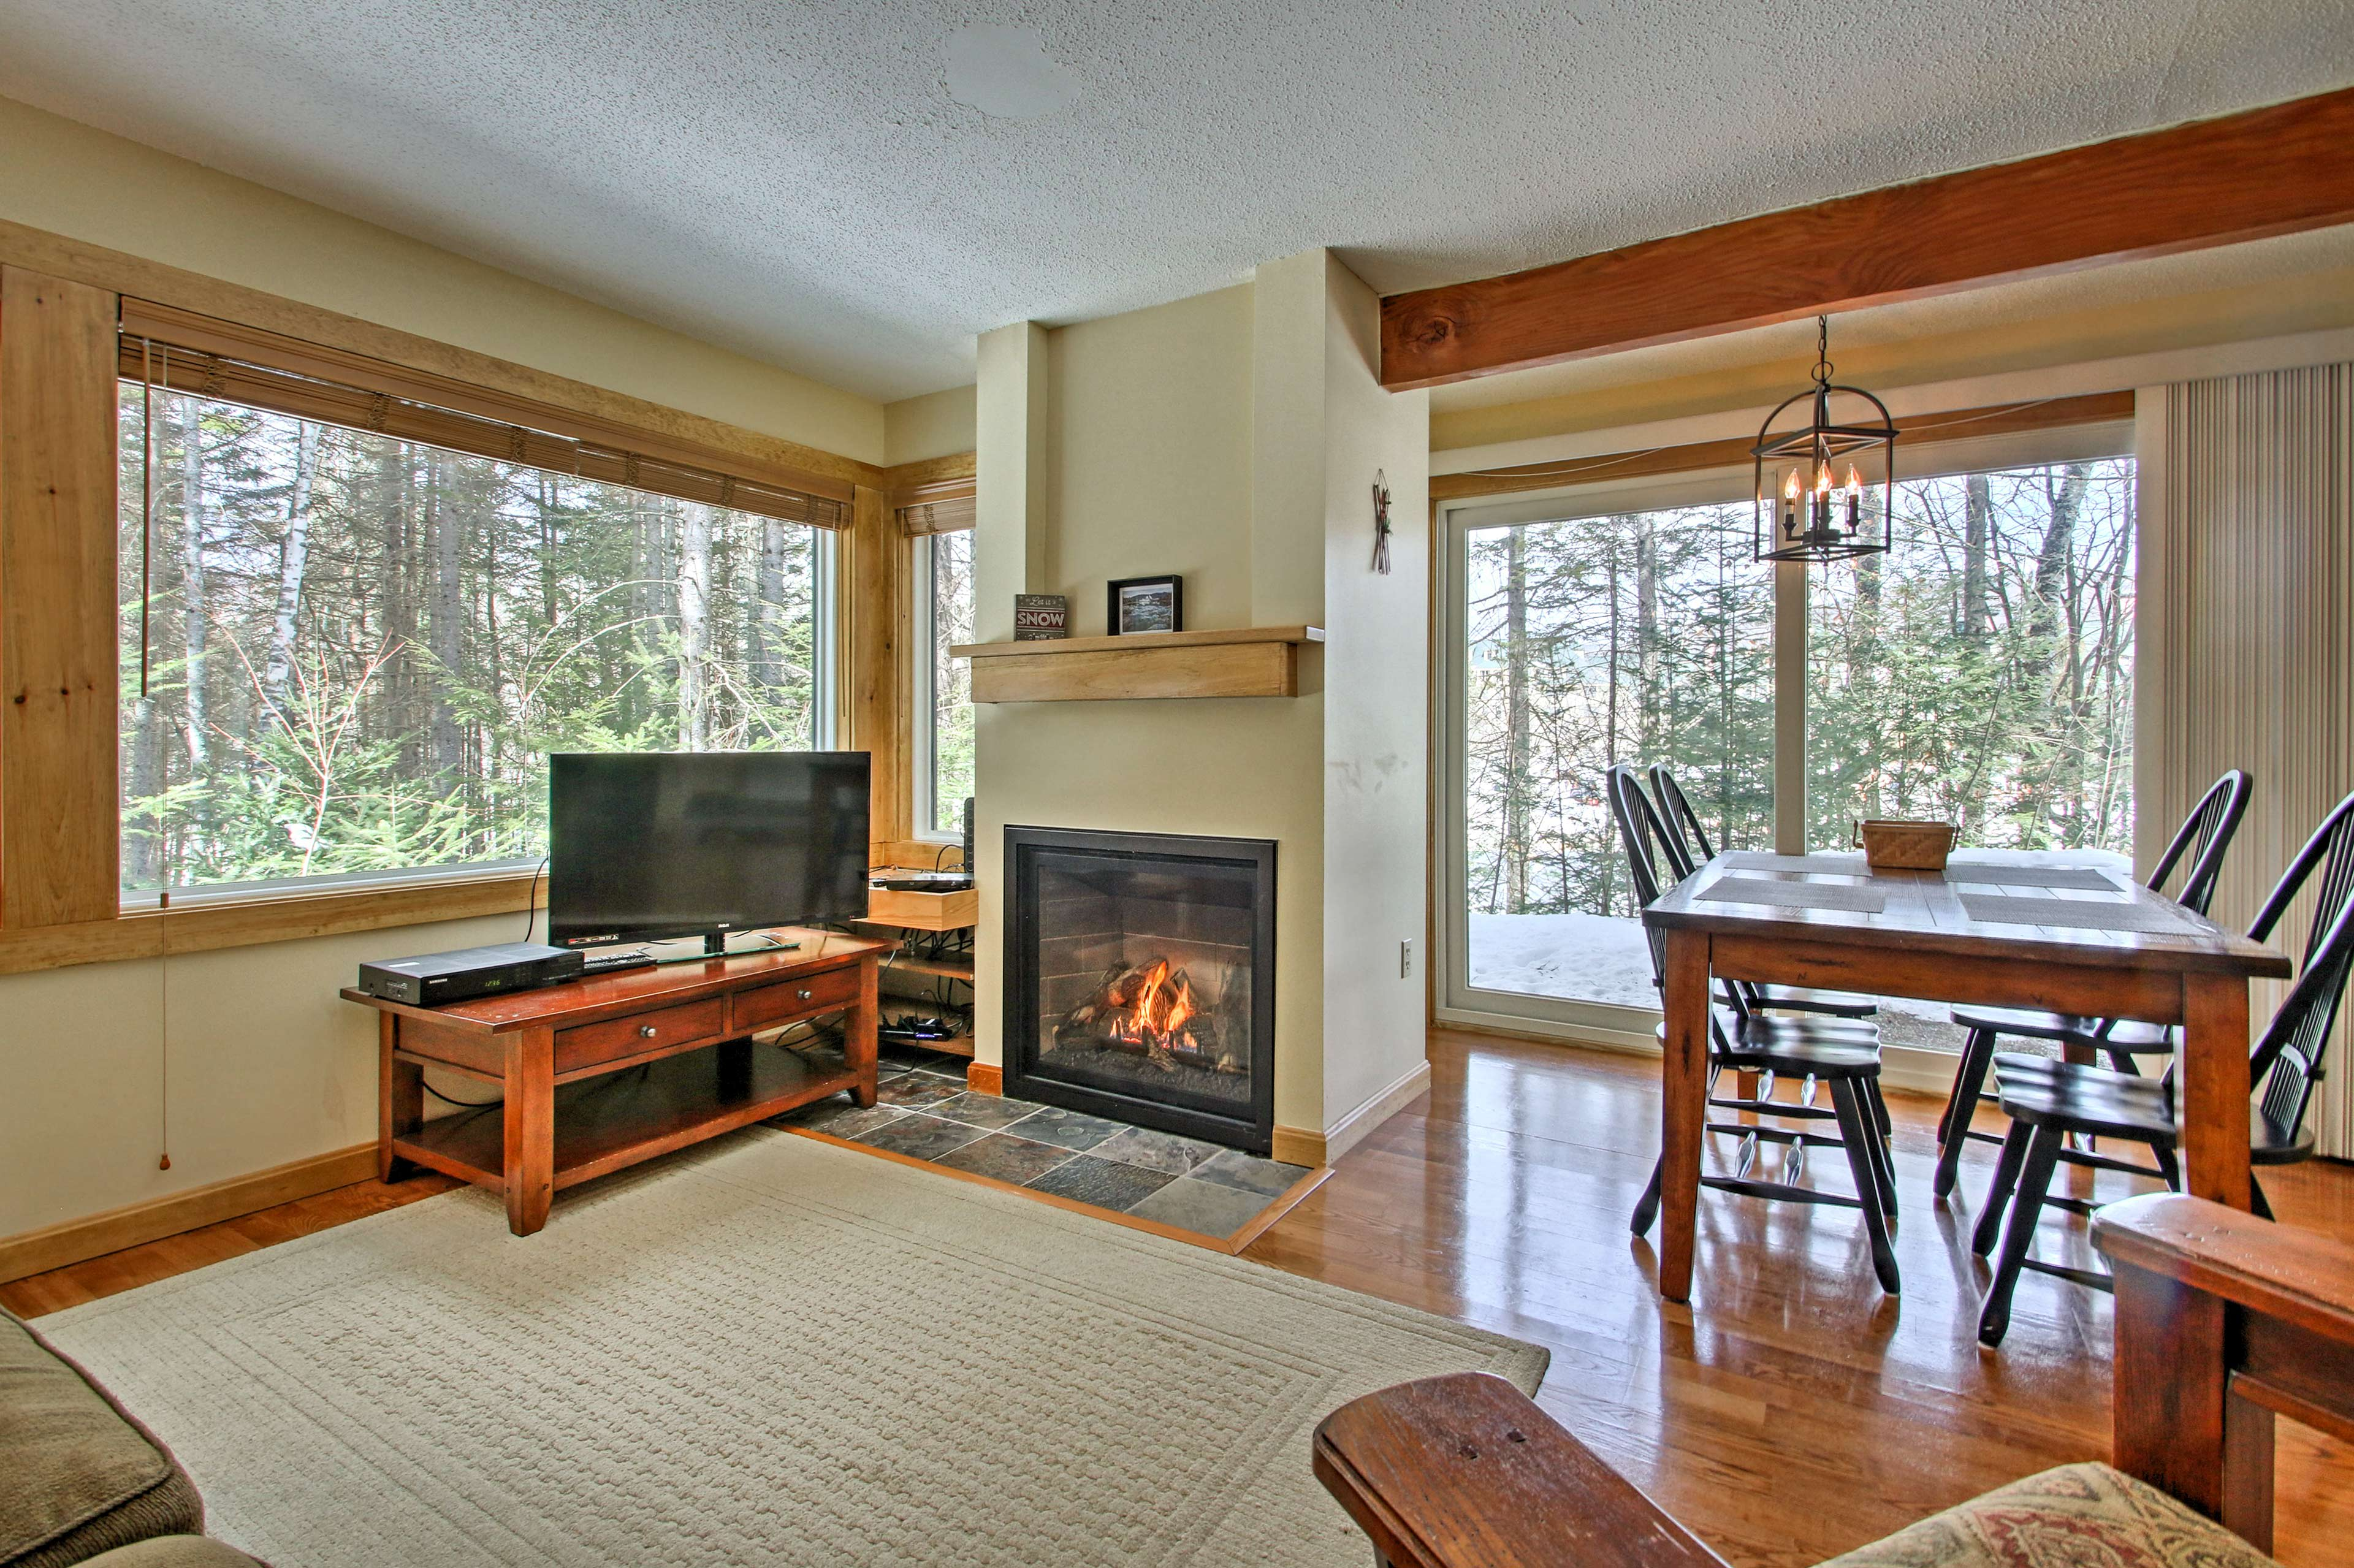 Eliminate your winter chill in front of the gas fireplace.